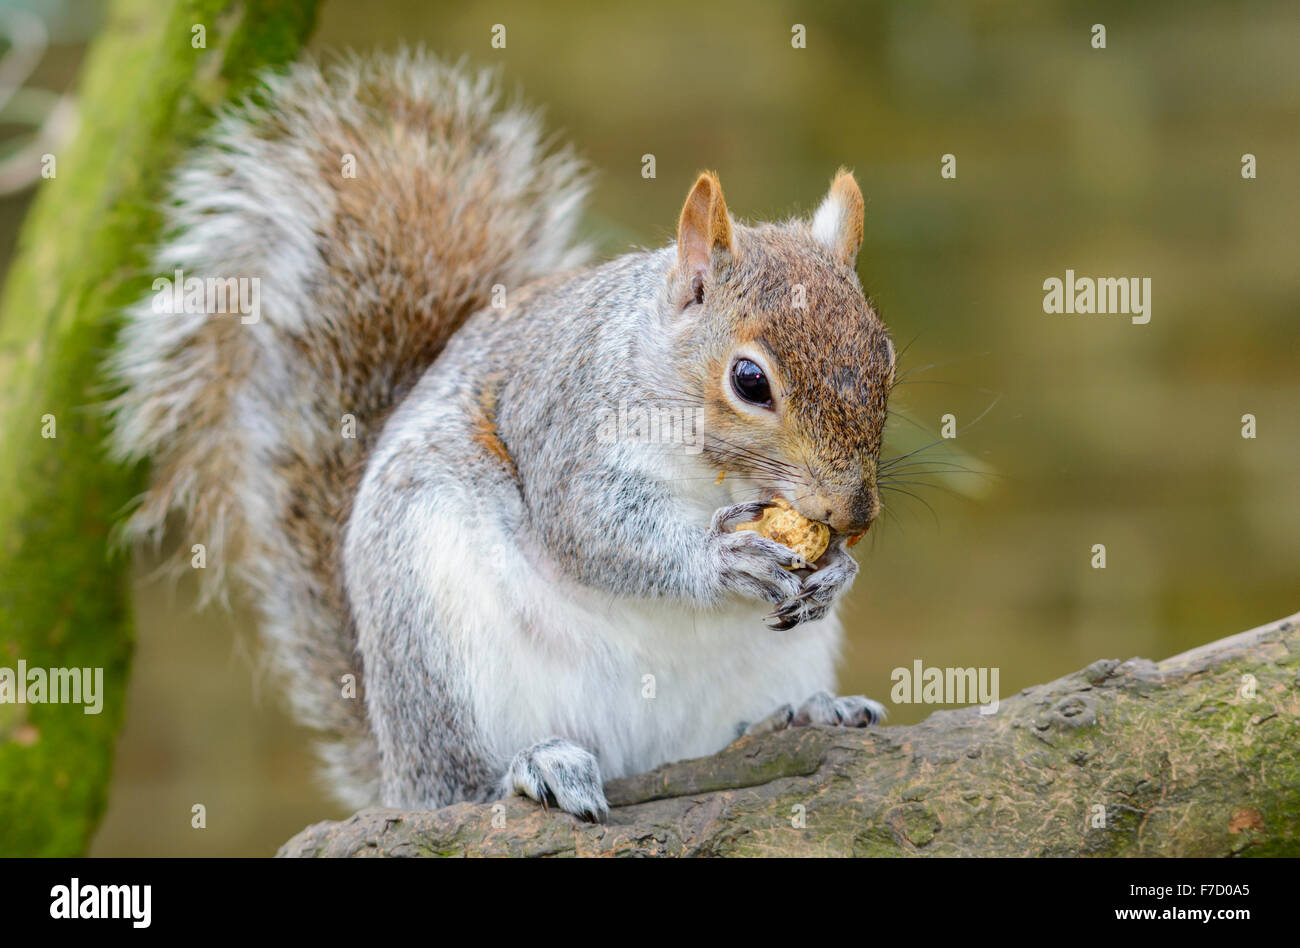 Grey Squirrel (Sciurus Carolinensis) eating a nut on the branch of a tree. - Stock Image